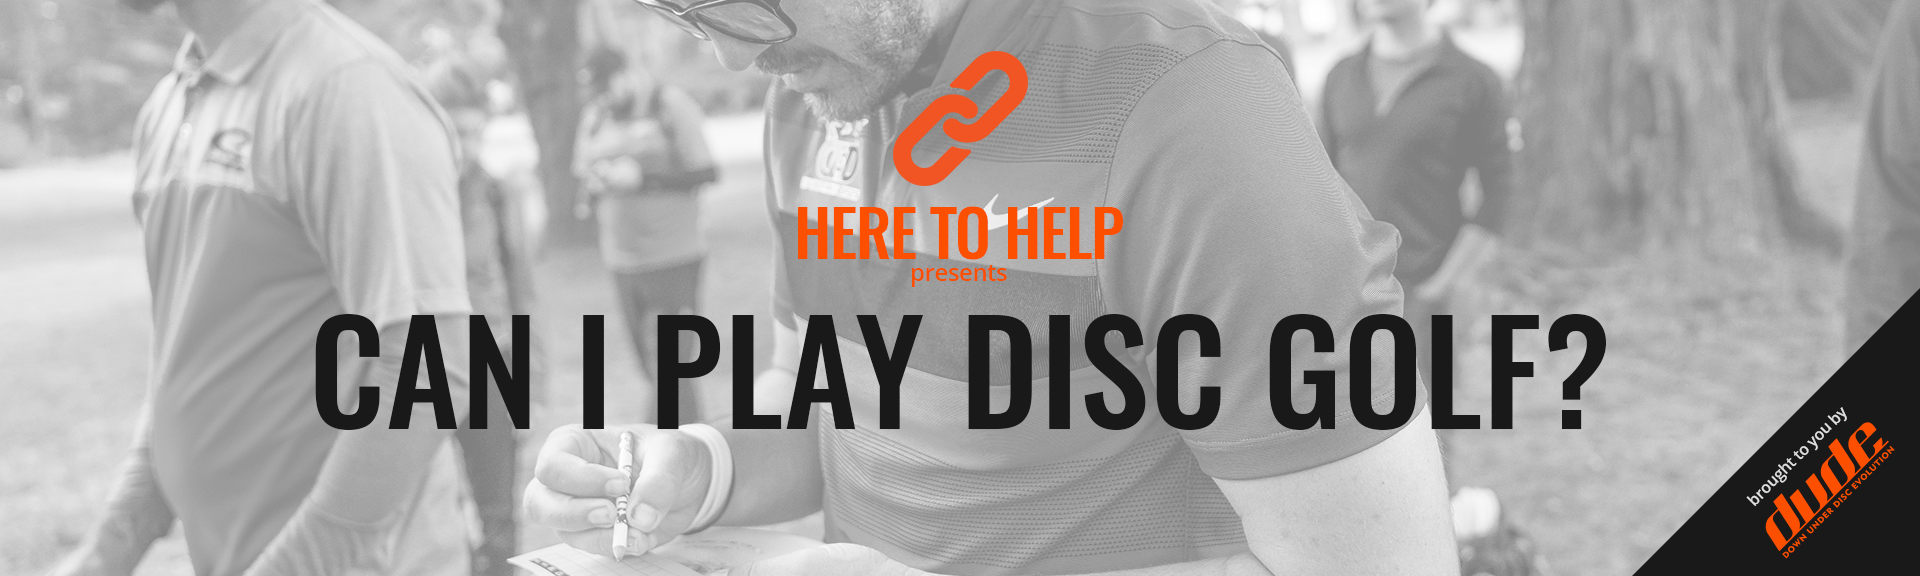 Here to Help - Can I play Disc Golf? Disc Golf, DGPT, Discs, Course, disc golf bags, play